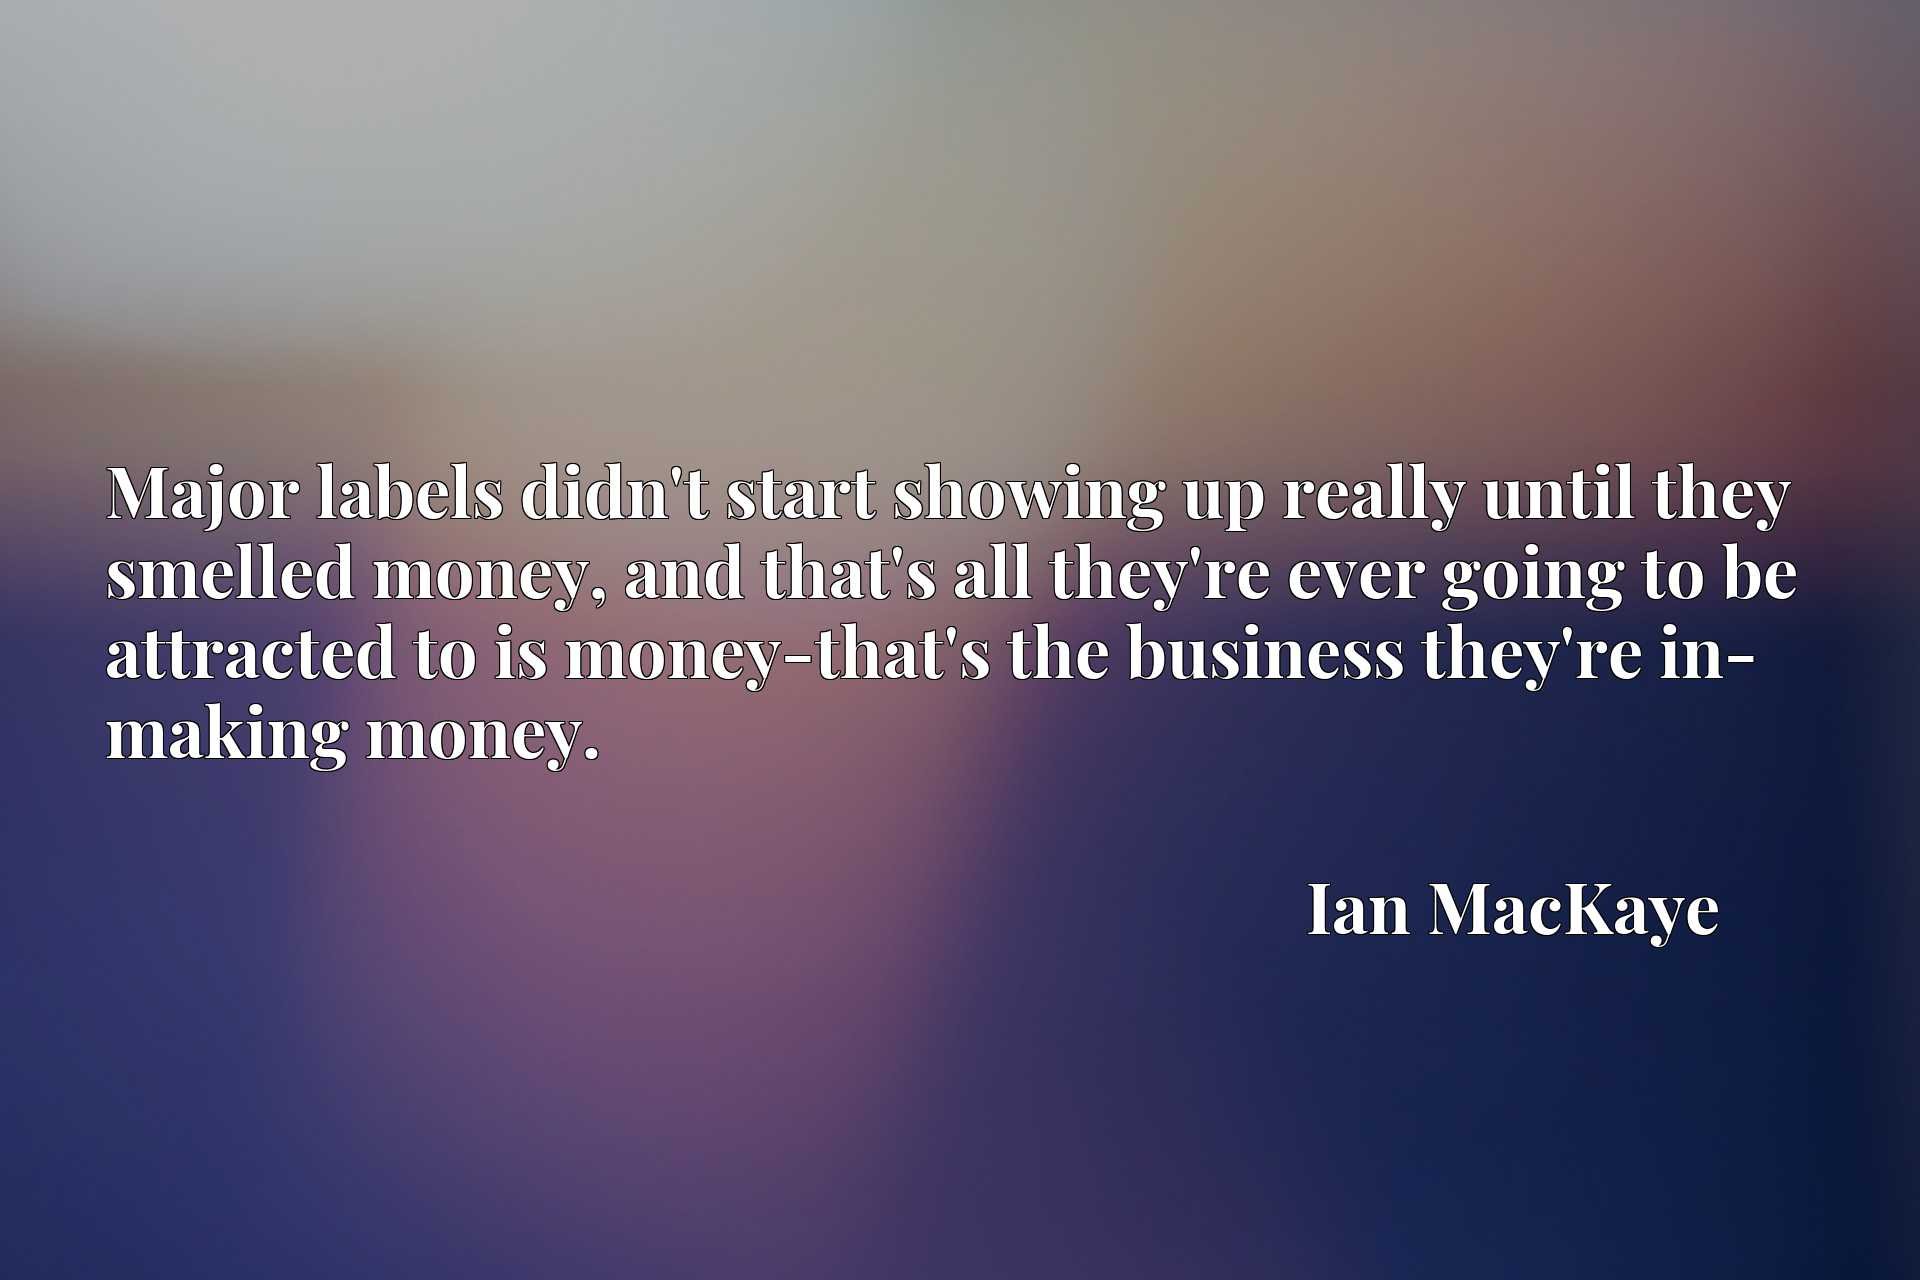 Major labels didn't start showing up really until they smelled money, and that's all they're ever going to be attracted to is money-that's the business they're in- making money.